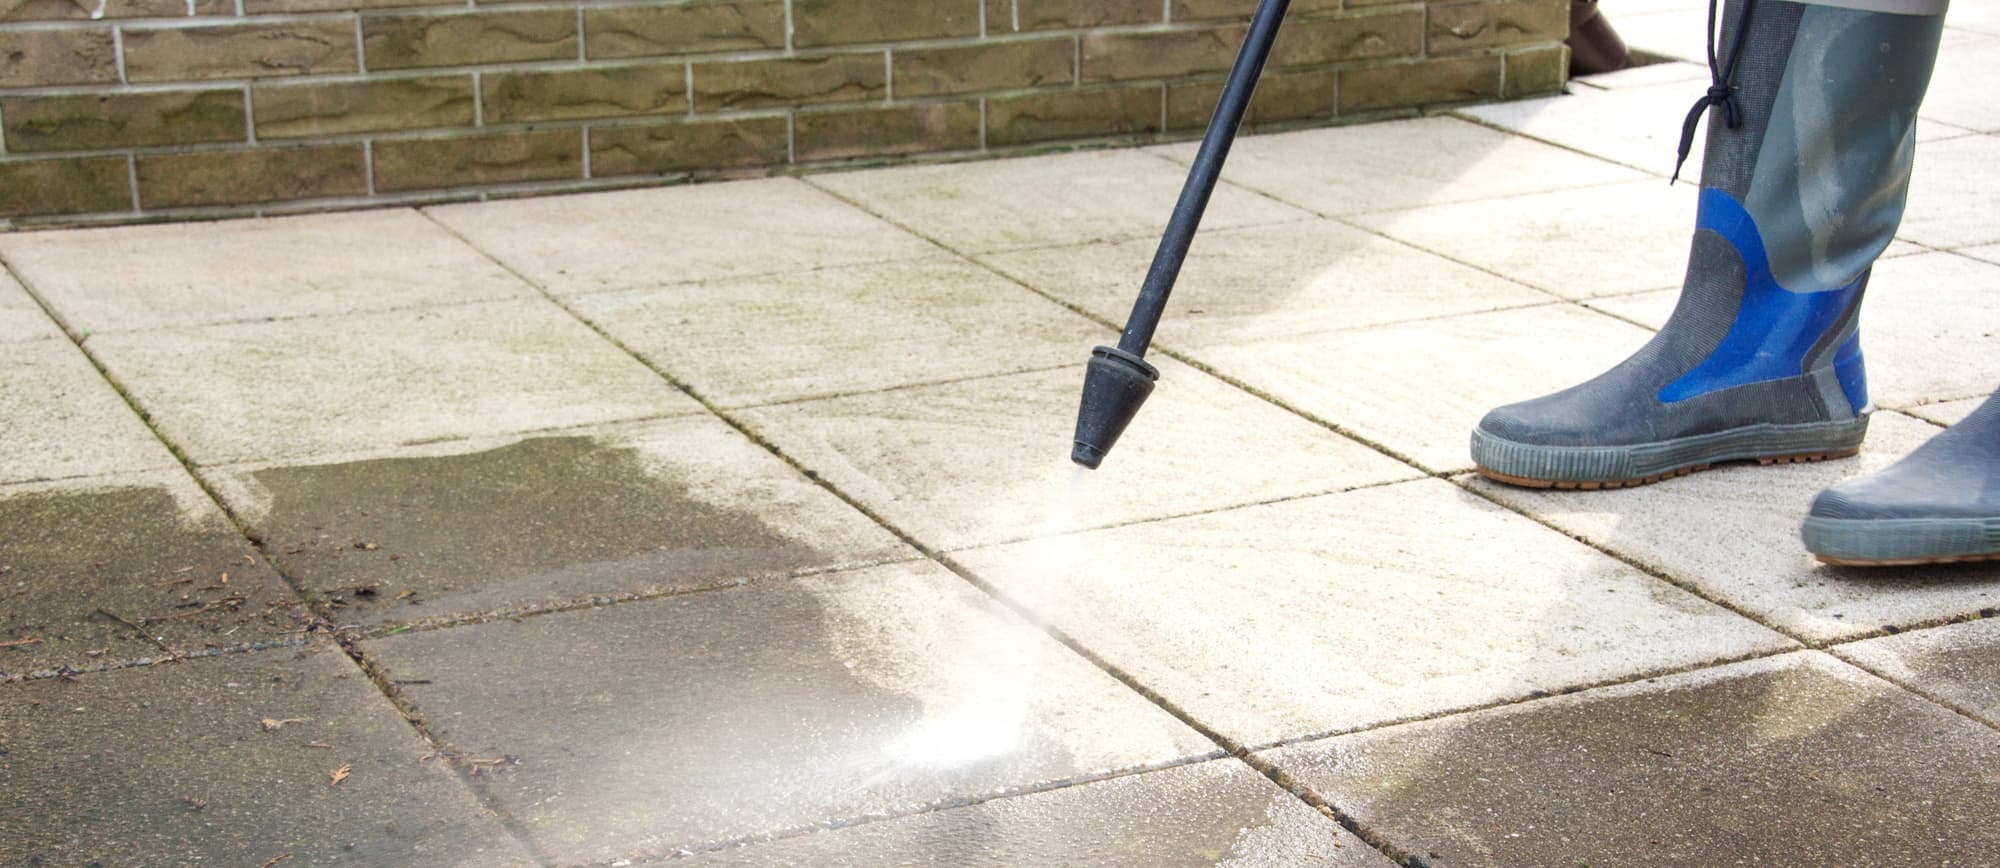 Cleaning an outdoor patio with a pressure washer